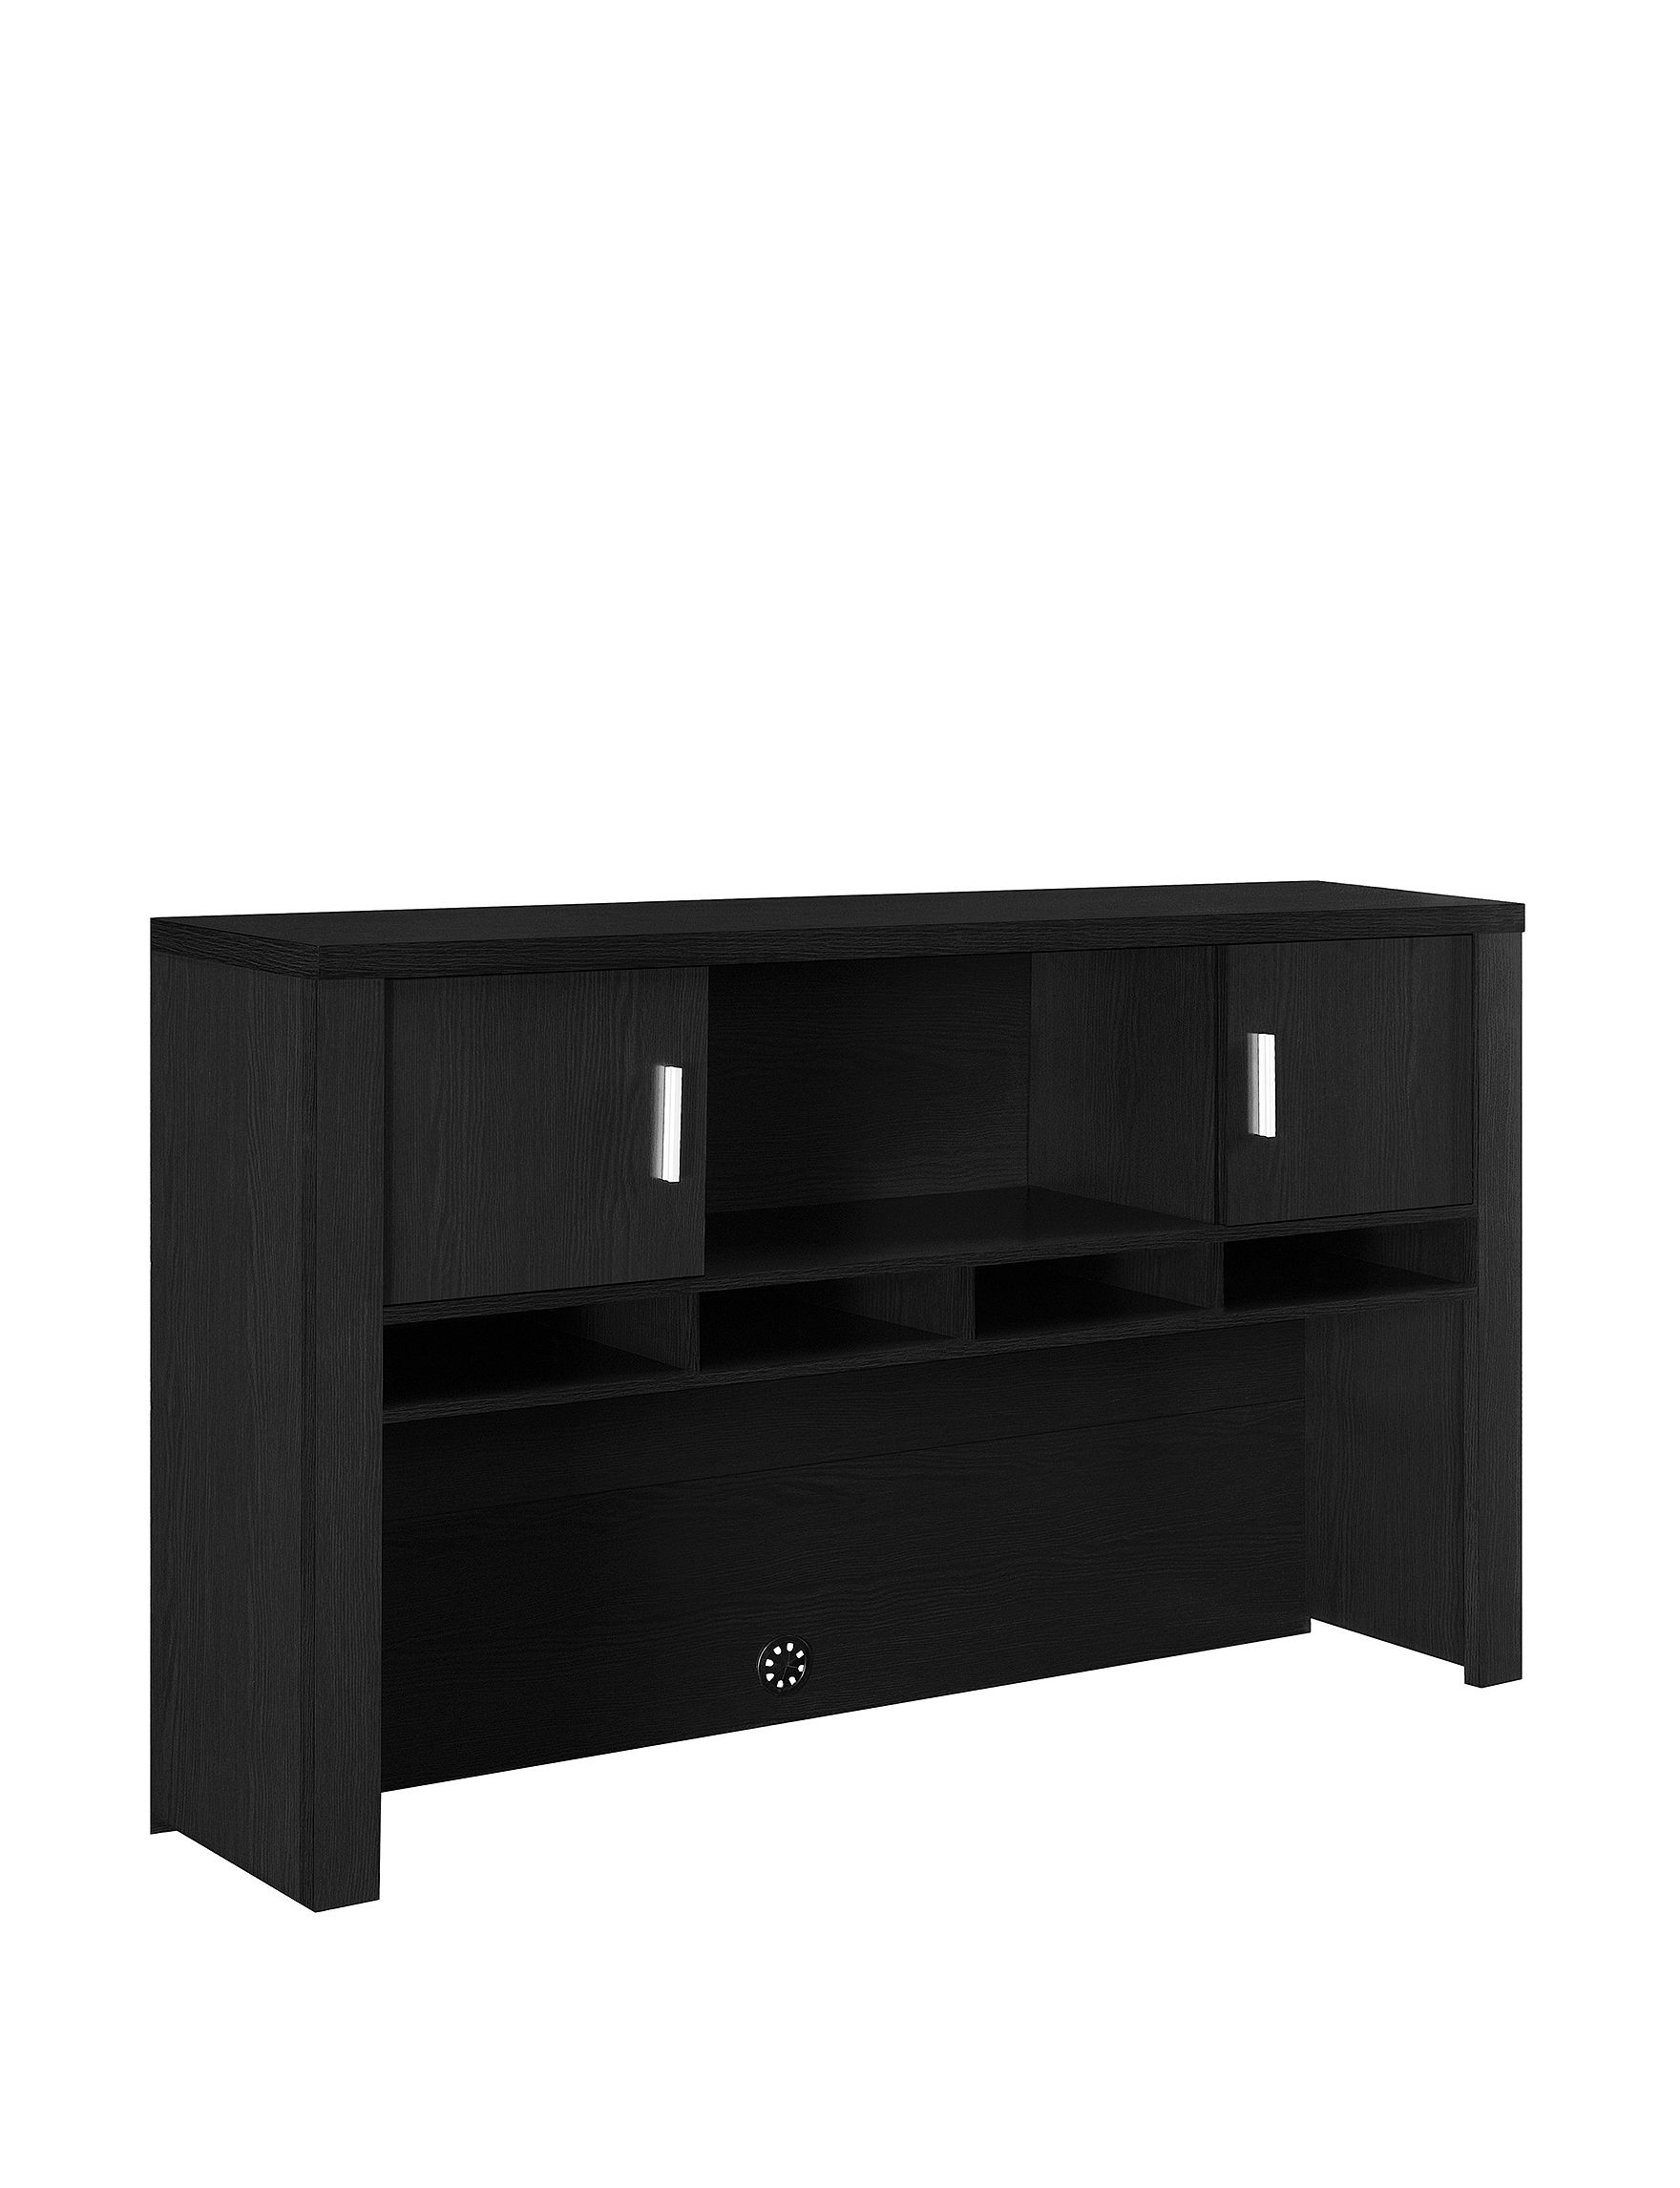 Altra Espresso TV Stands & Entertainment Centers Home Office Furniture